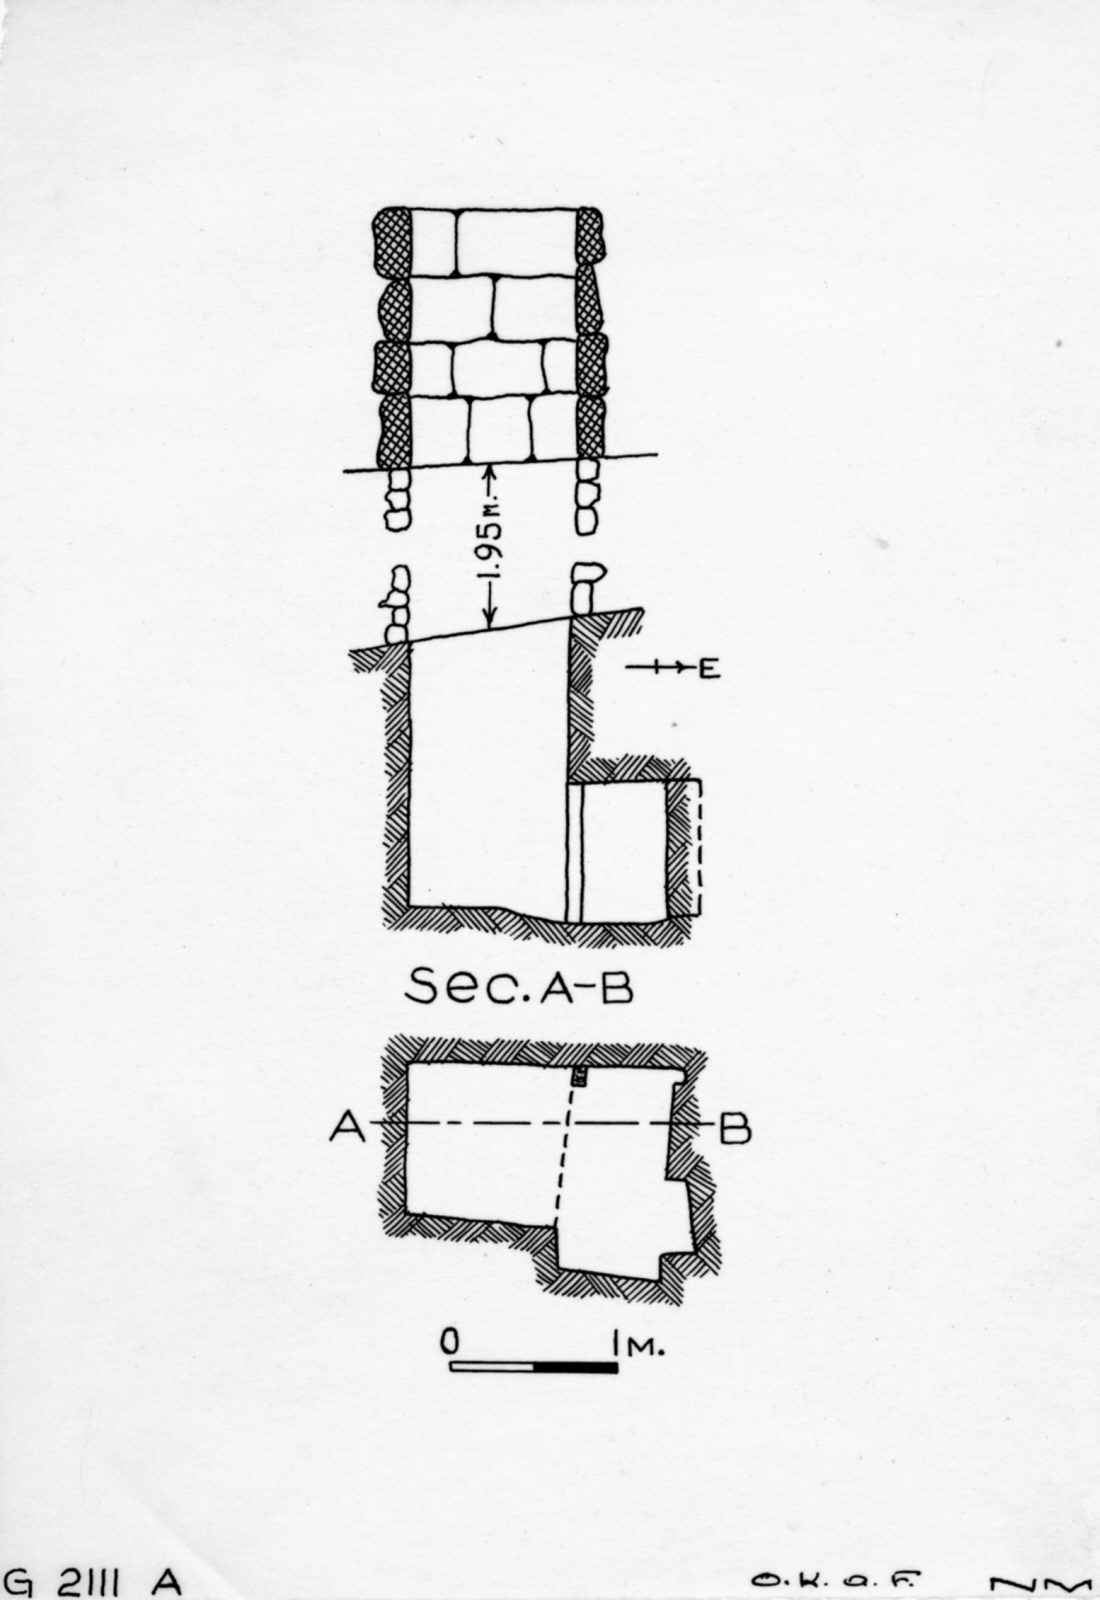 Maps and plans: G 2111, Shaft A